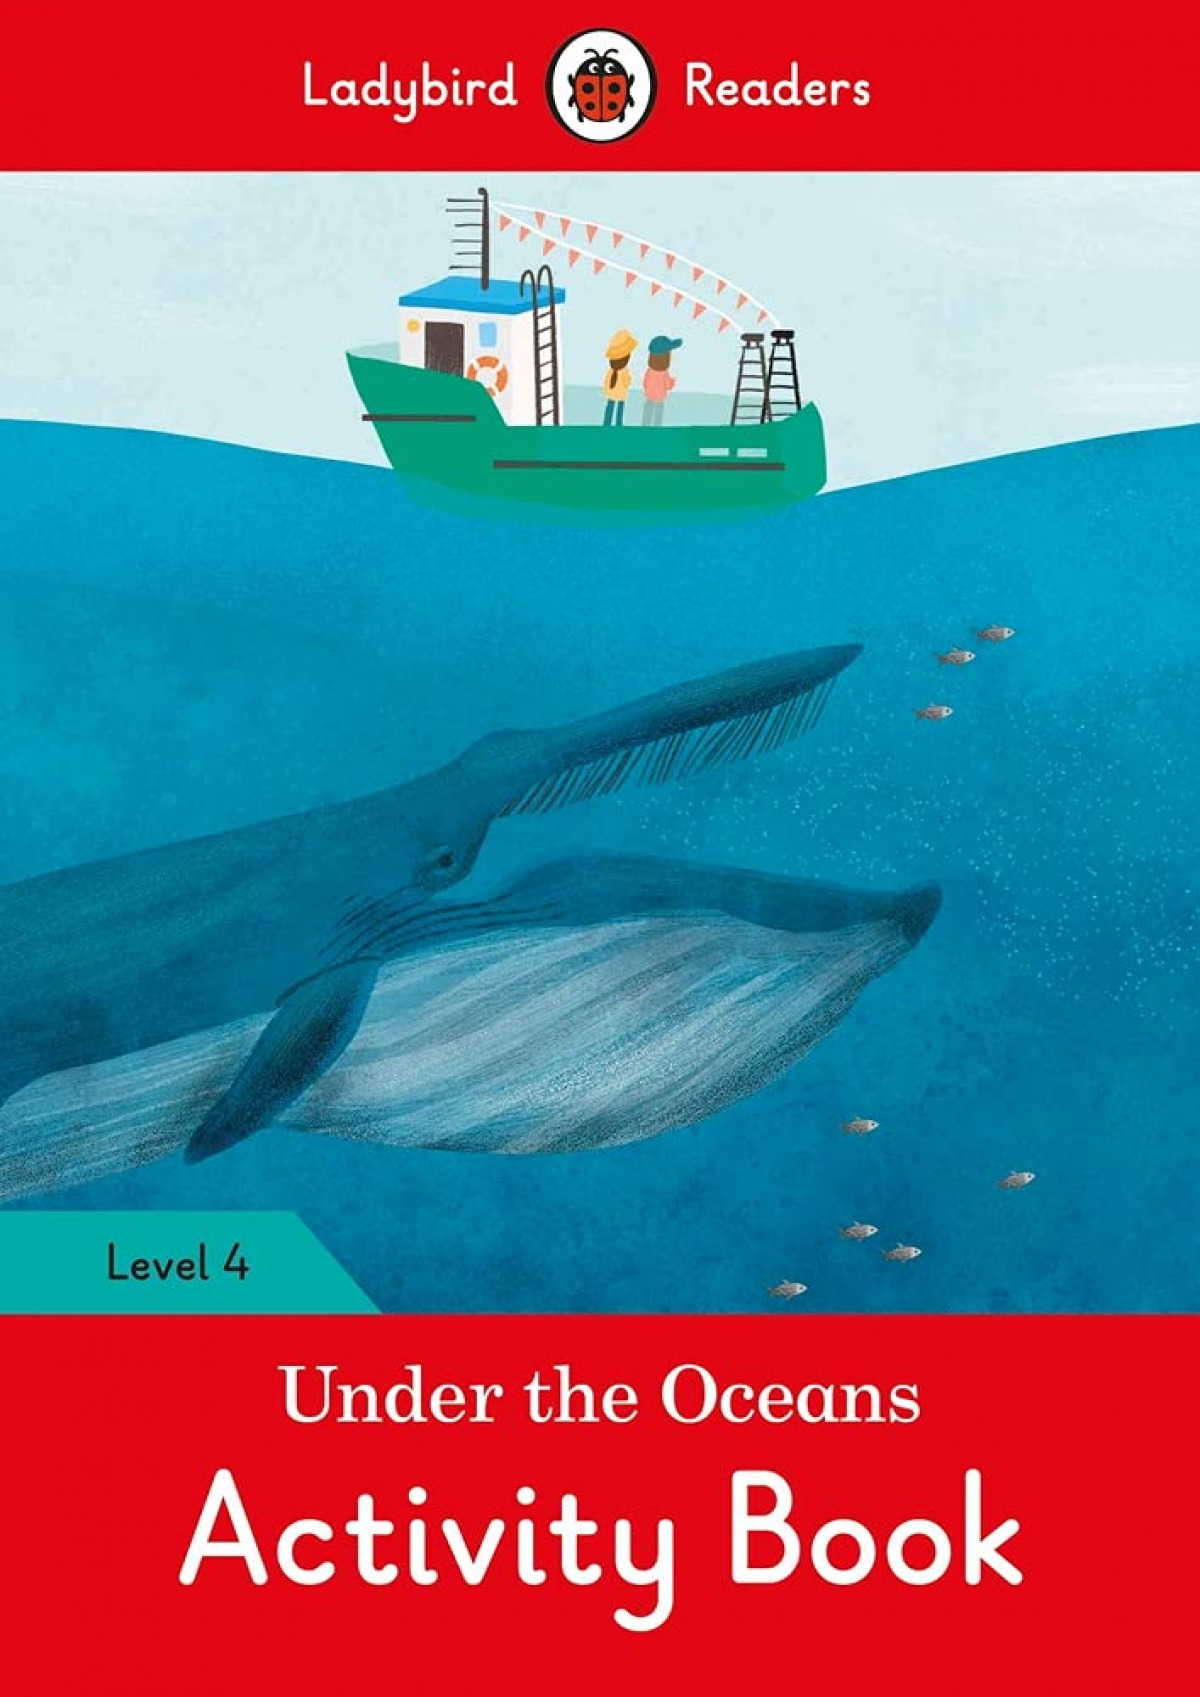 UNDER THE OCEANS. ACTIVITY BOOK